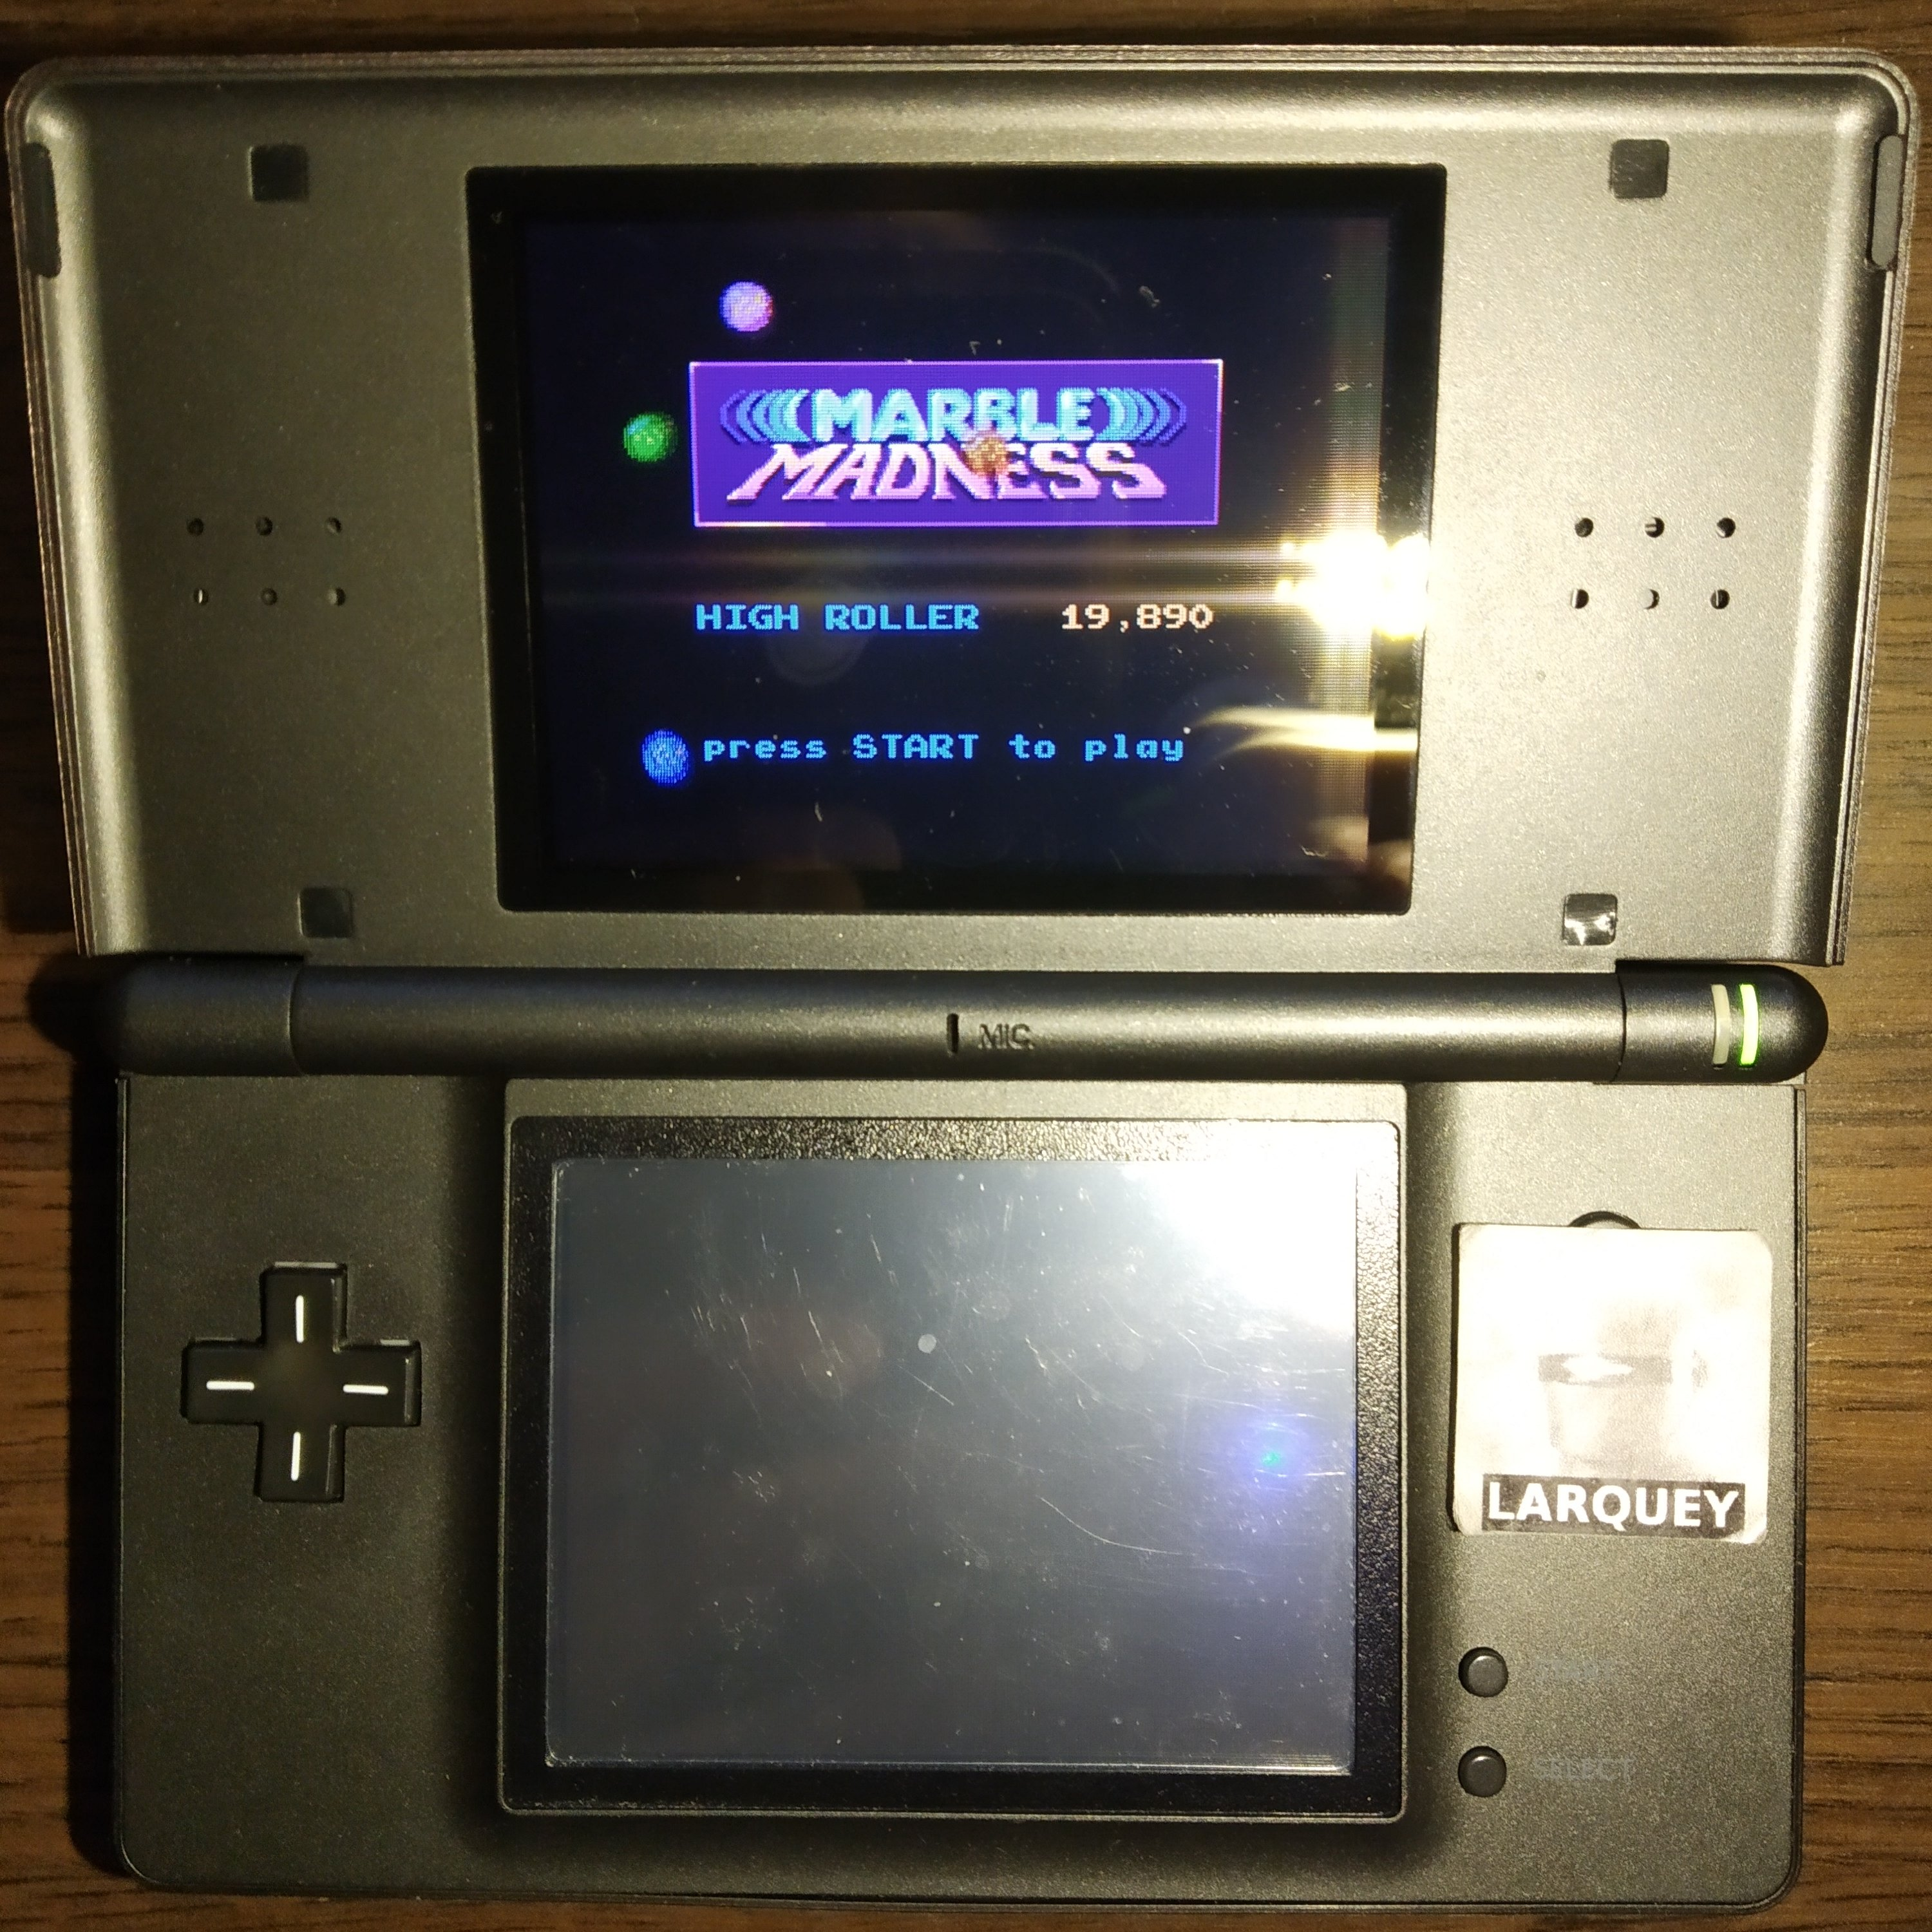 Larquey: Marble Madness (GBA) 19,890 points on 2020-08-22 11:42:11